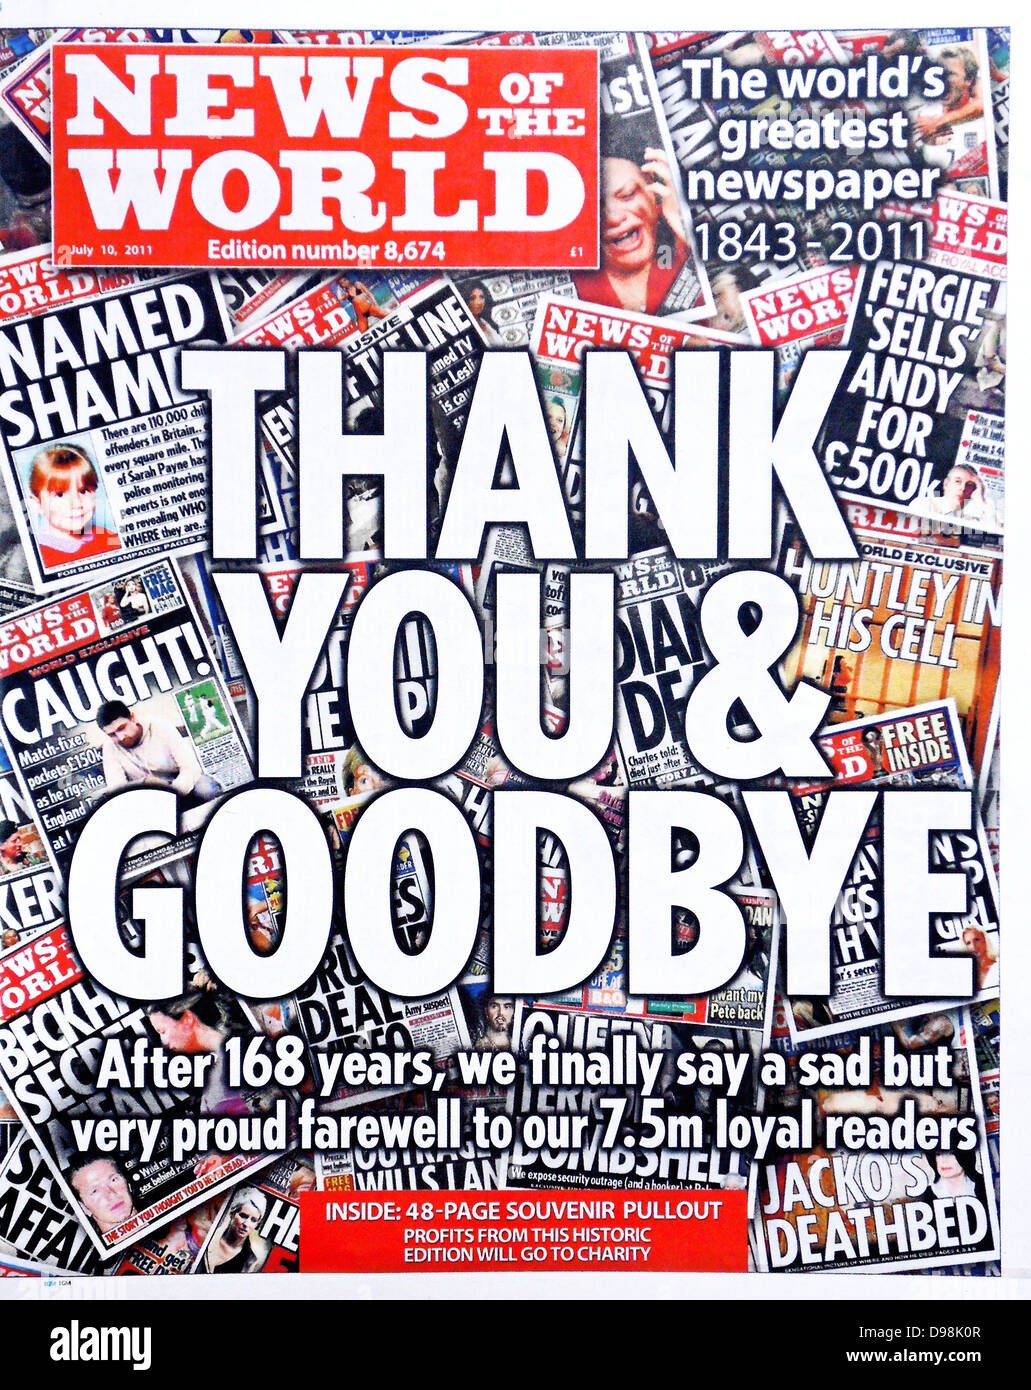 The 'News of the World' Newspaper 10th July 2011. The commemorative final edition of the newspaper. - Stock Image